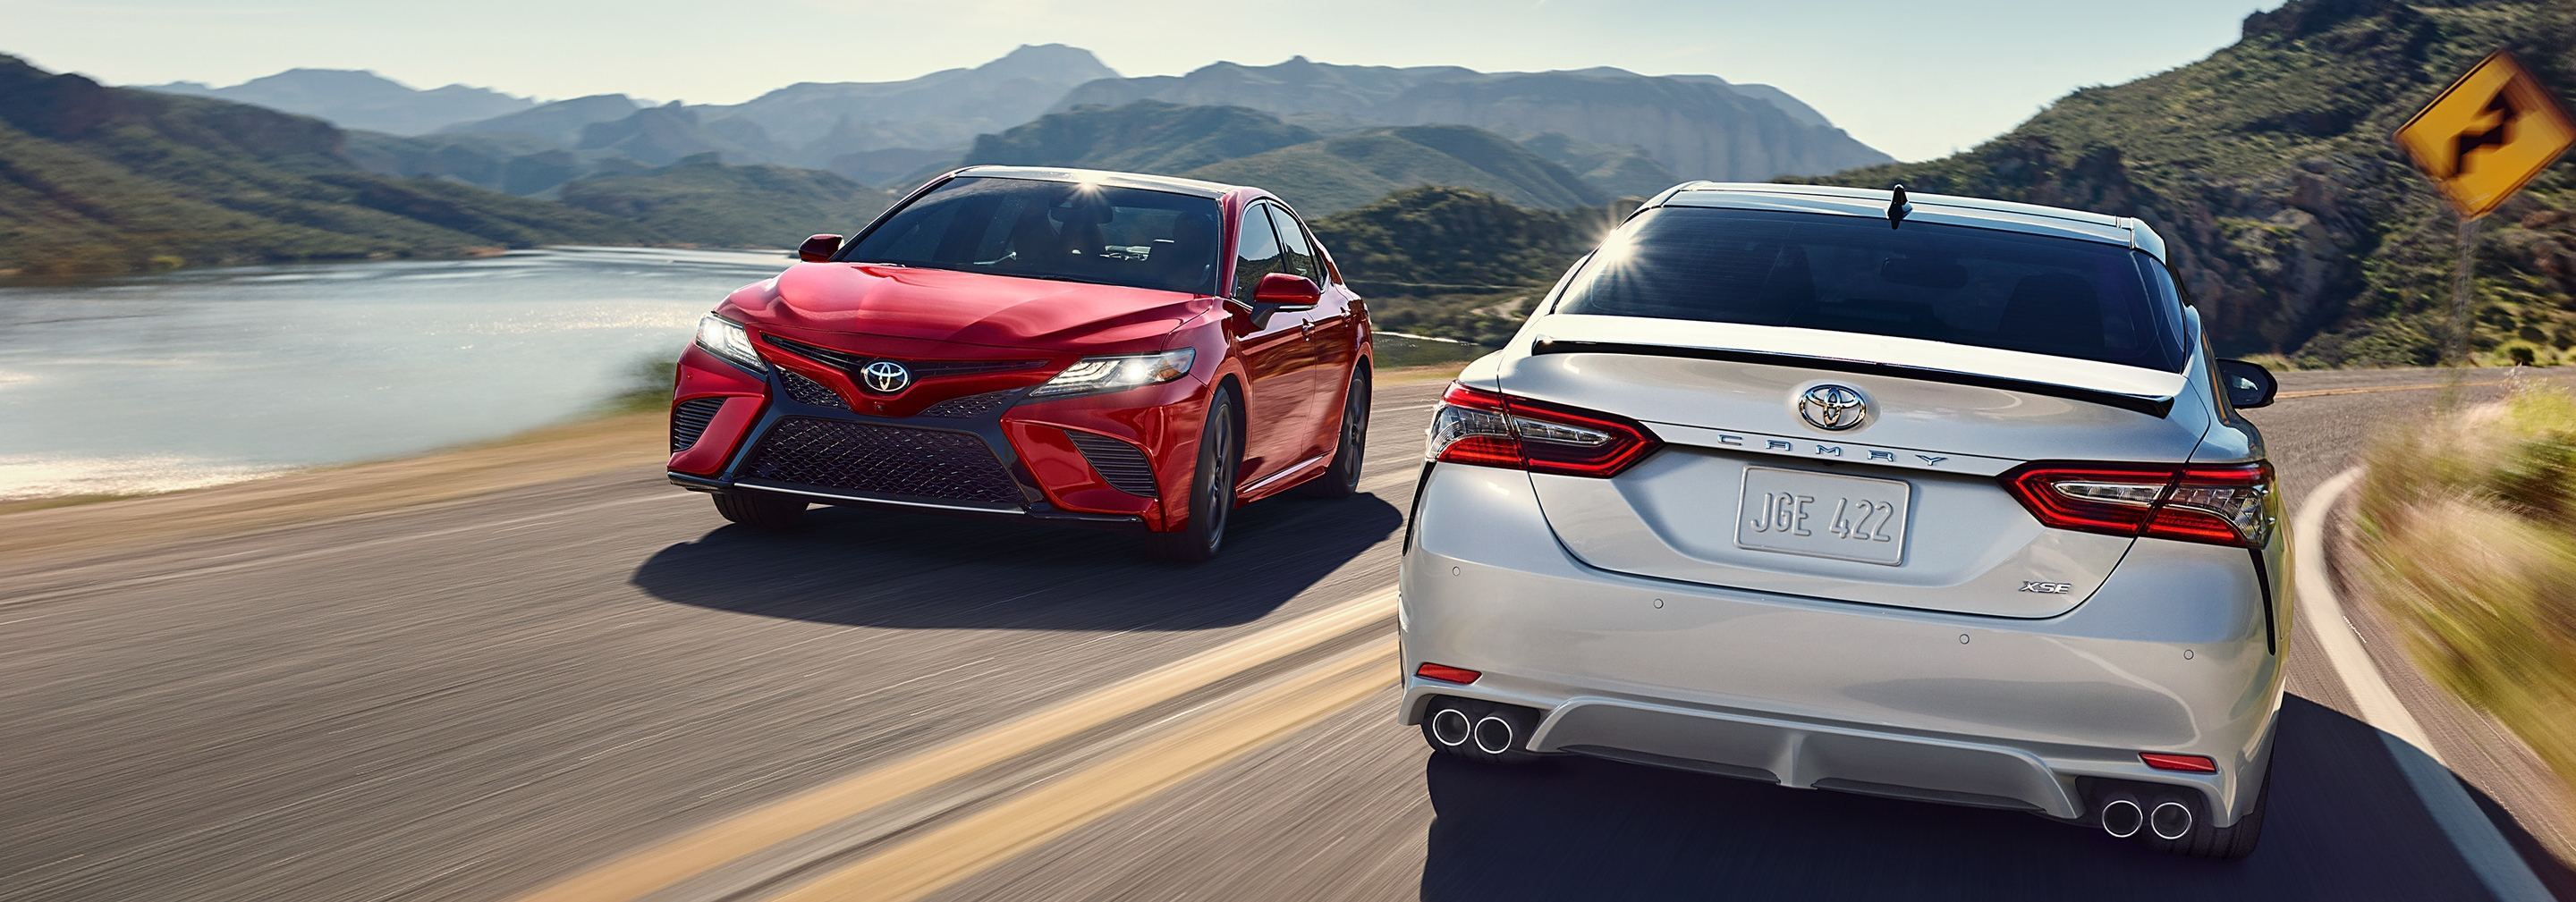 2020 Toyota Camry for Sale near Elgin, IL